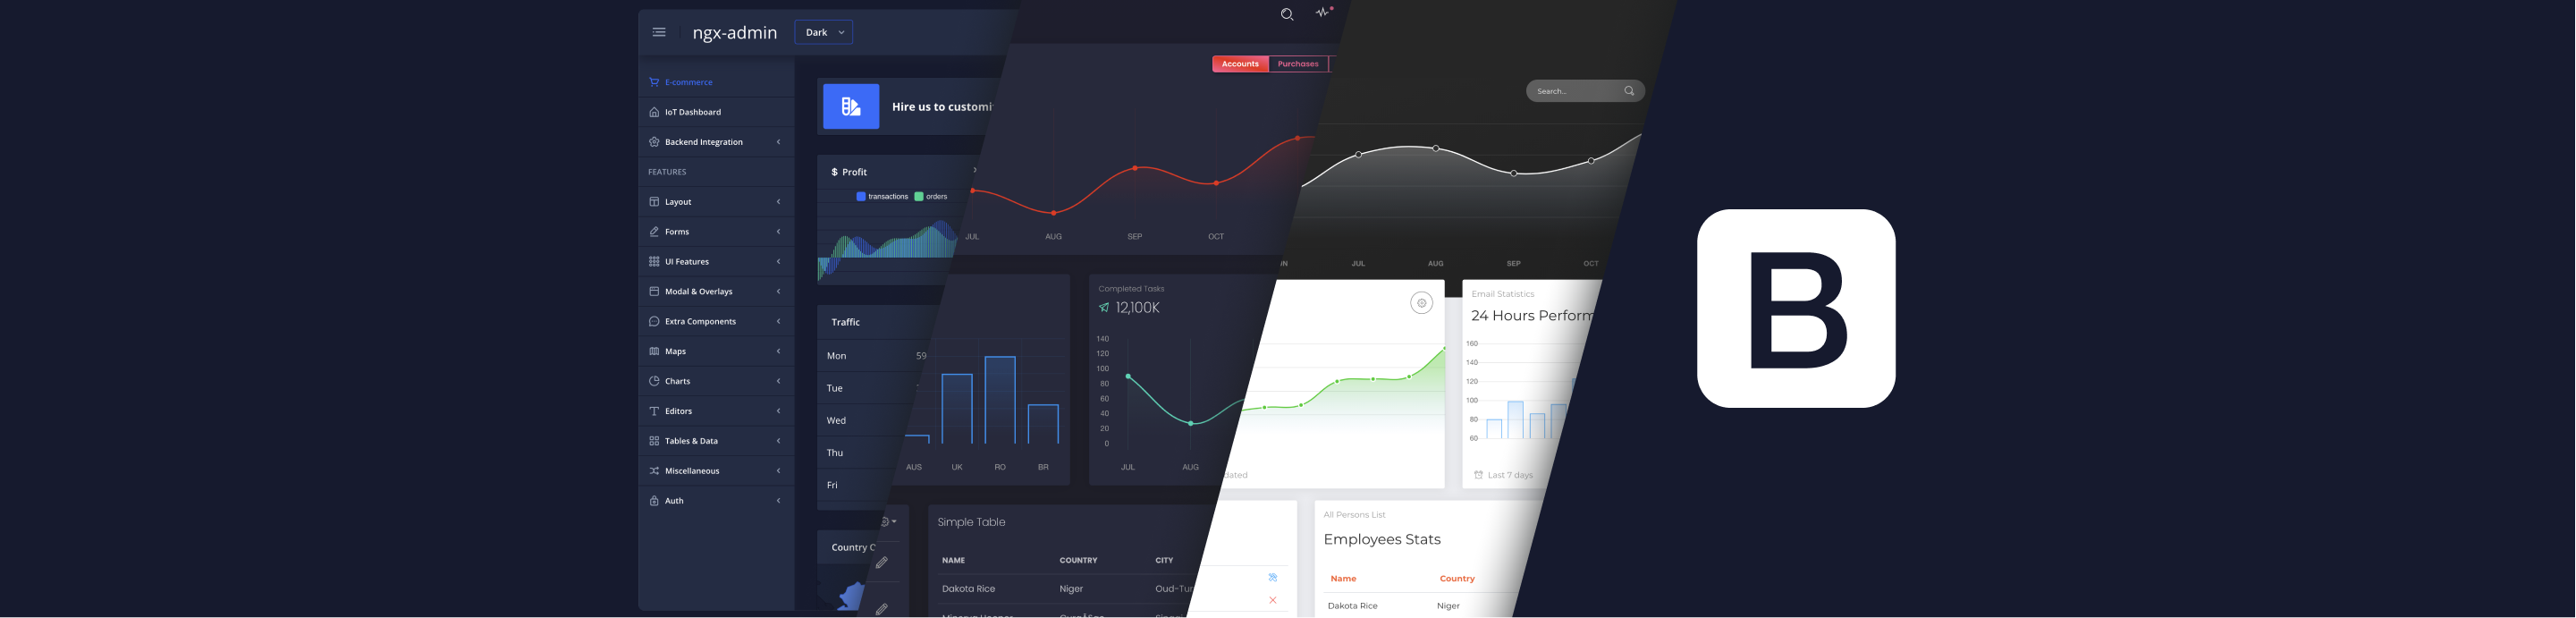 Top 15 Free Bootstrap Admin Dashboard Templates 2021